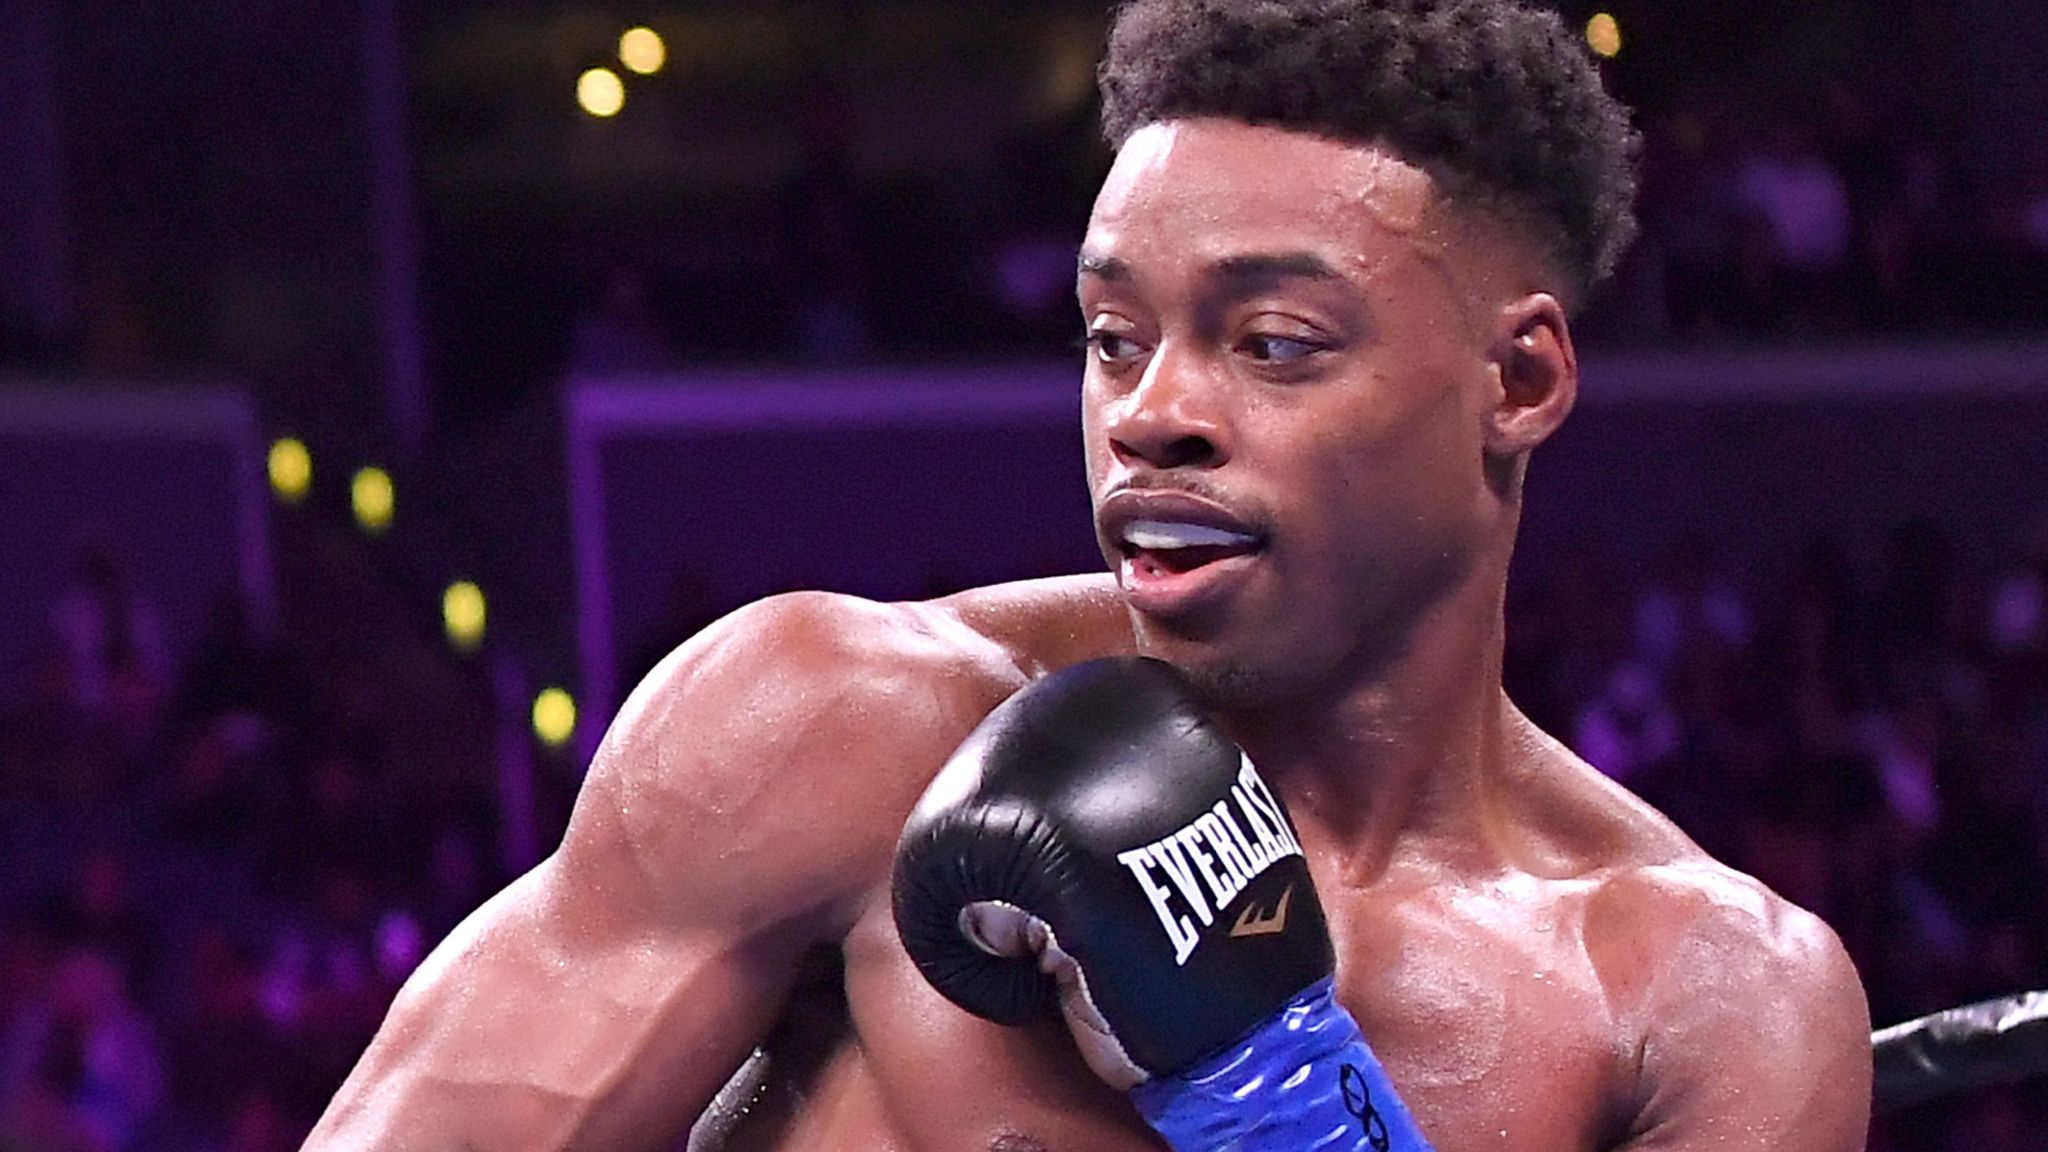 Errol Spence Jr expected to make full recovery after car